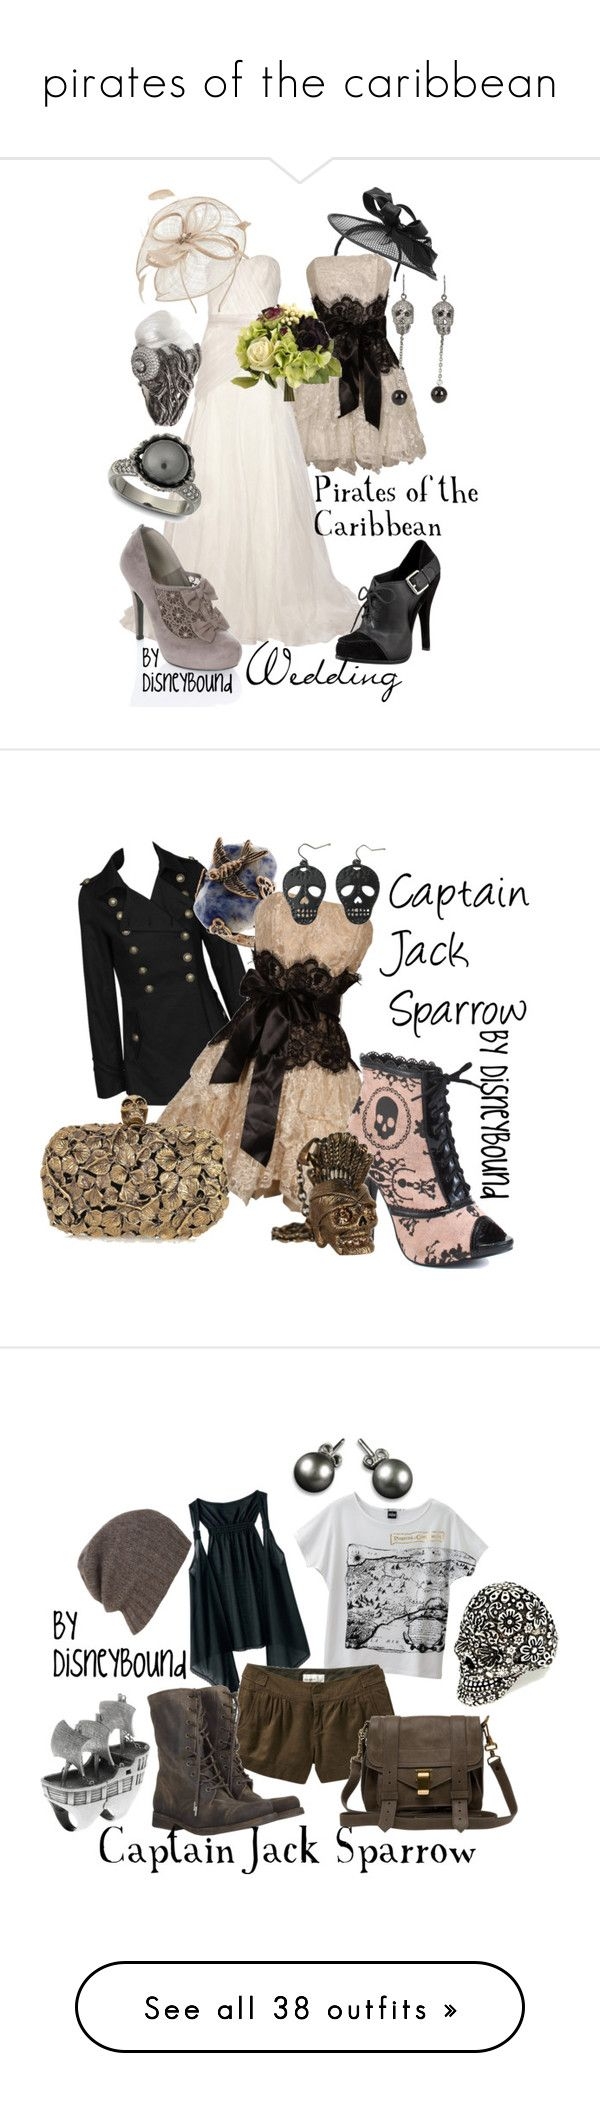 """""""pirates of the caribbean"""" by star2012 ❤ liked on Polyvore featuring Miu Miu, Lela Rose, Elizabeth and James, Miss Selfridge, CC, Noir Jewelry, Lydia Courteille, Swarovski, disney and Don't Ask Amanda"""